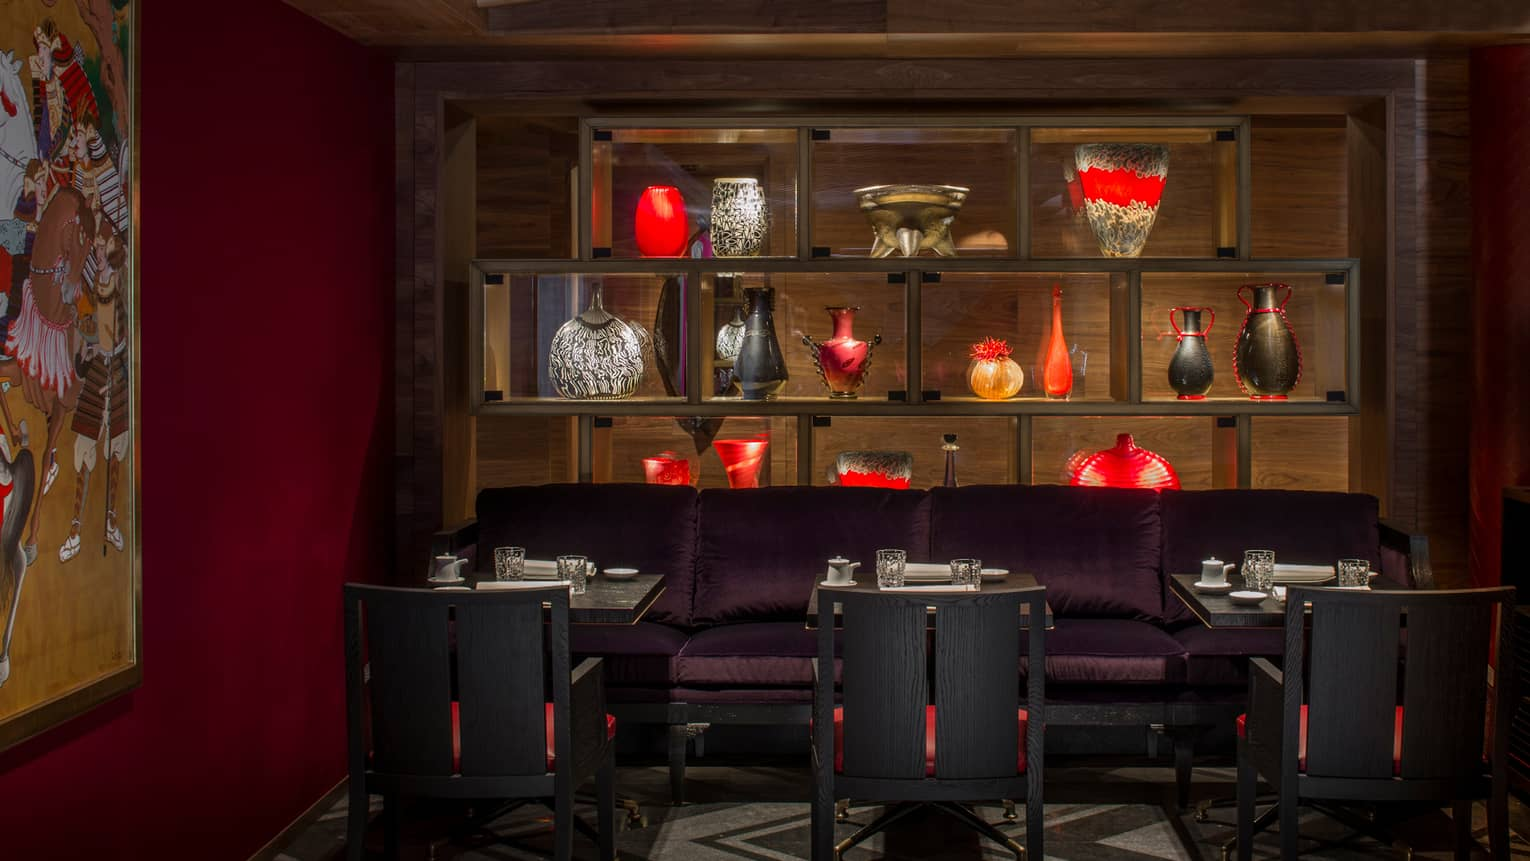 Kaito restaurant, black, red vases on shelf with lights over purple banquette, tables, colourful wall textile